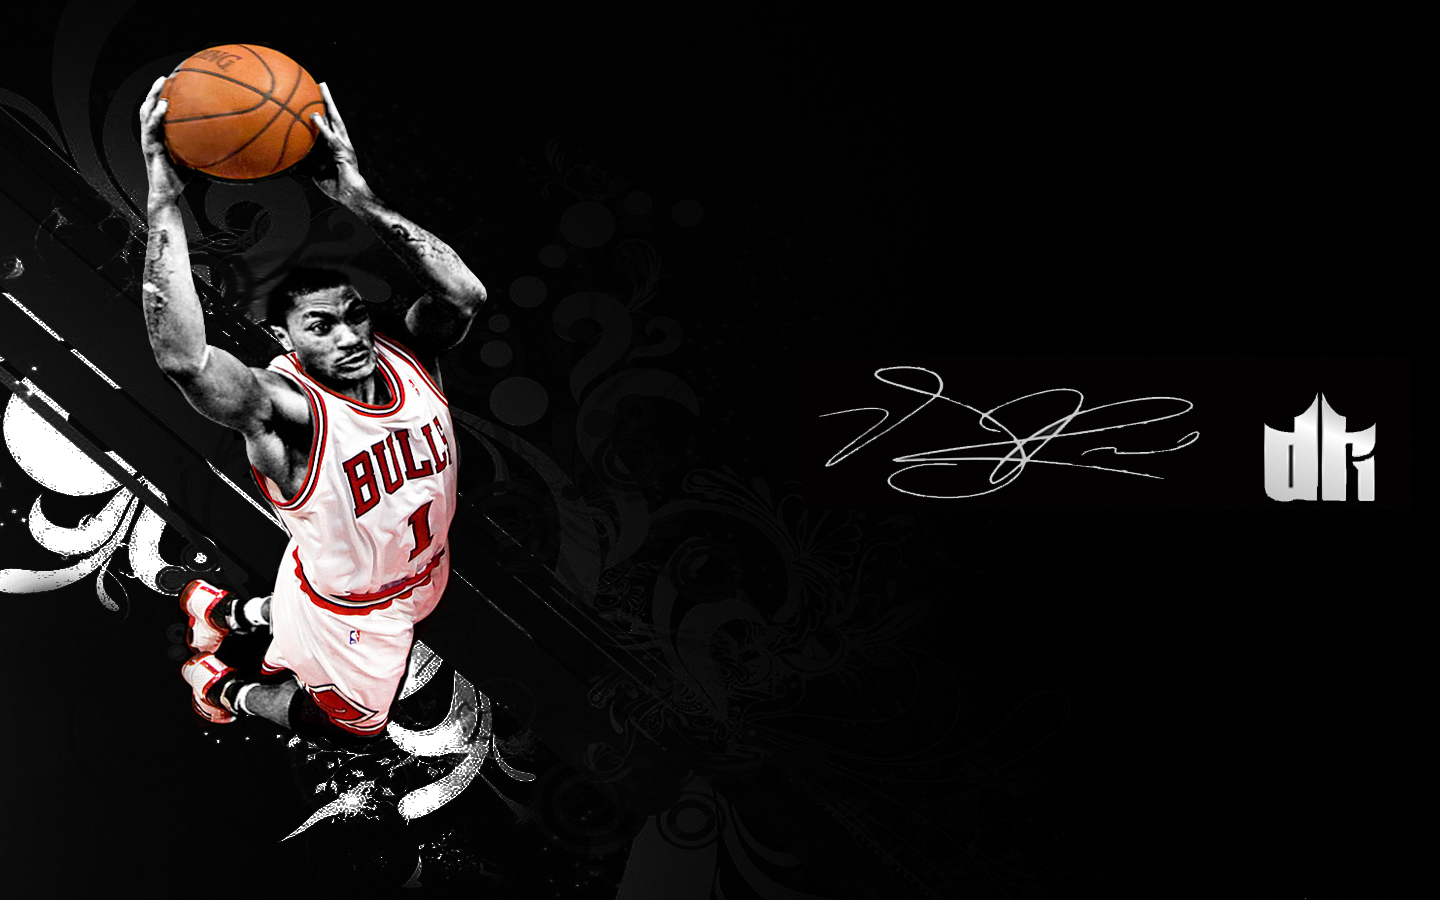 Derrick Rose Wallpaper HD ImageBankbiz 1440x900